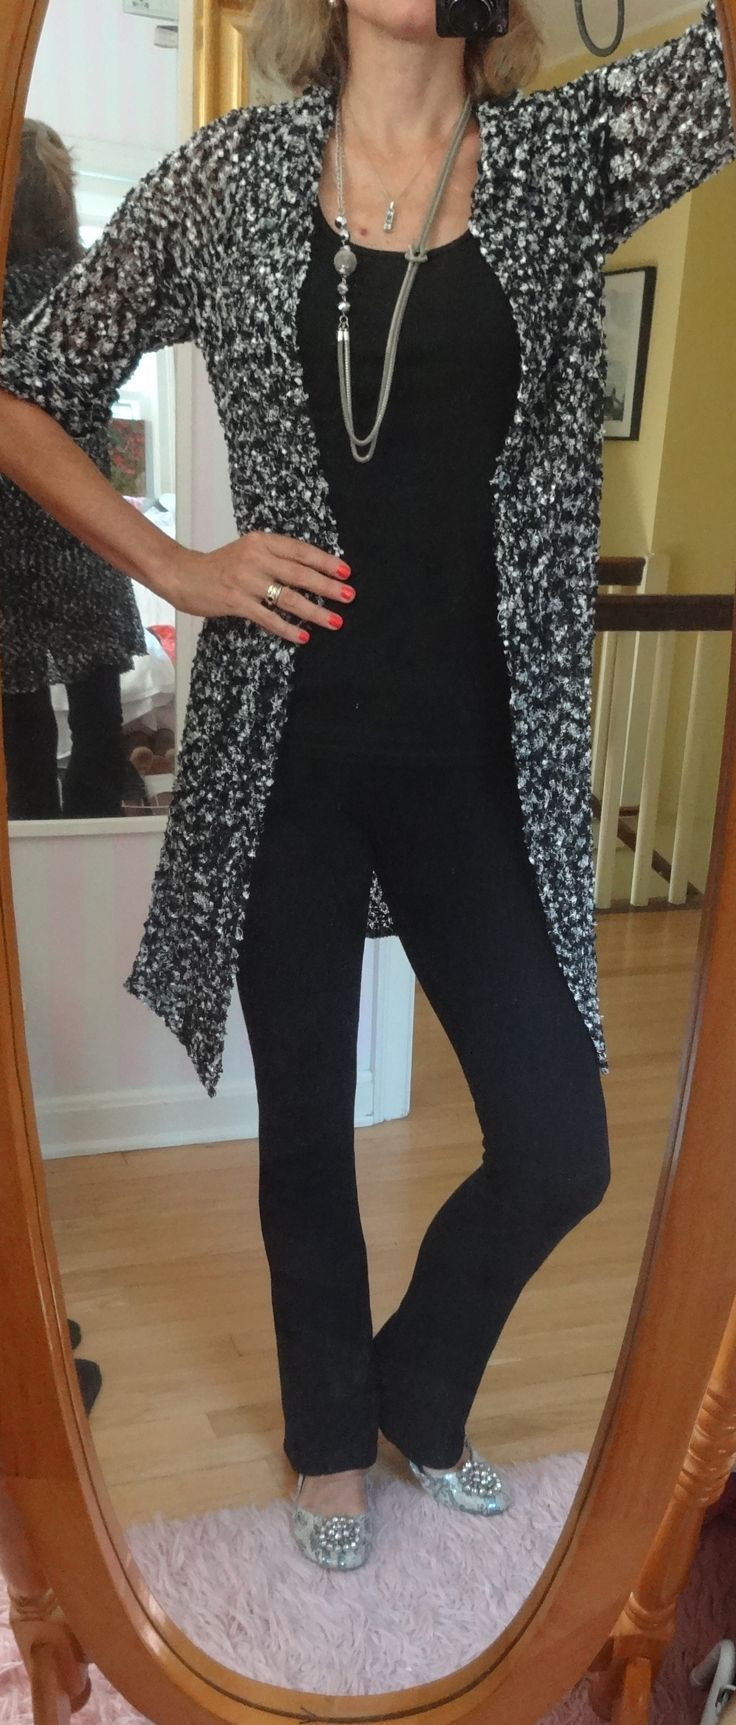 Dressing over 50 - going to the movies - all black with a knit cardigan